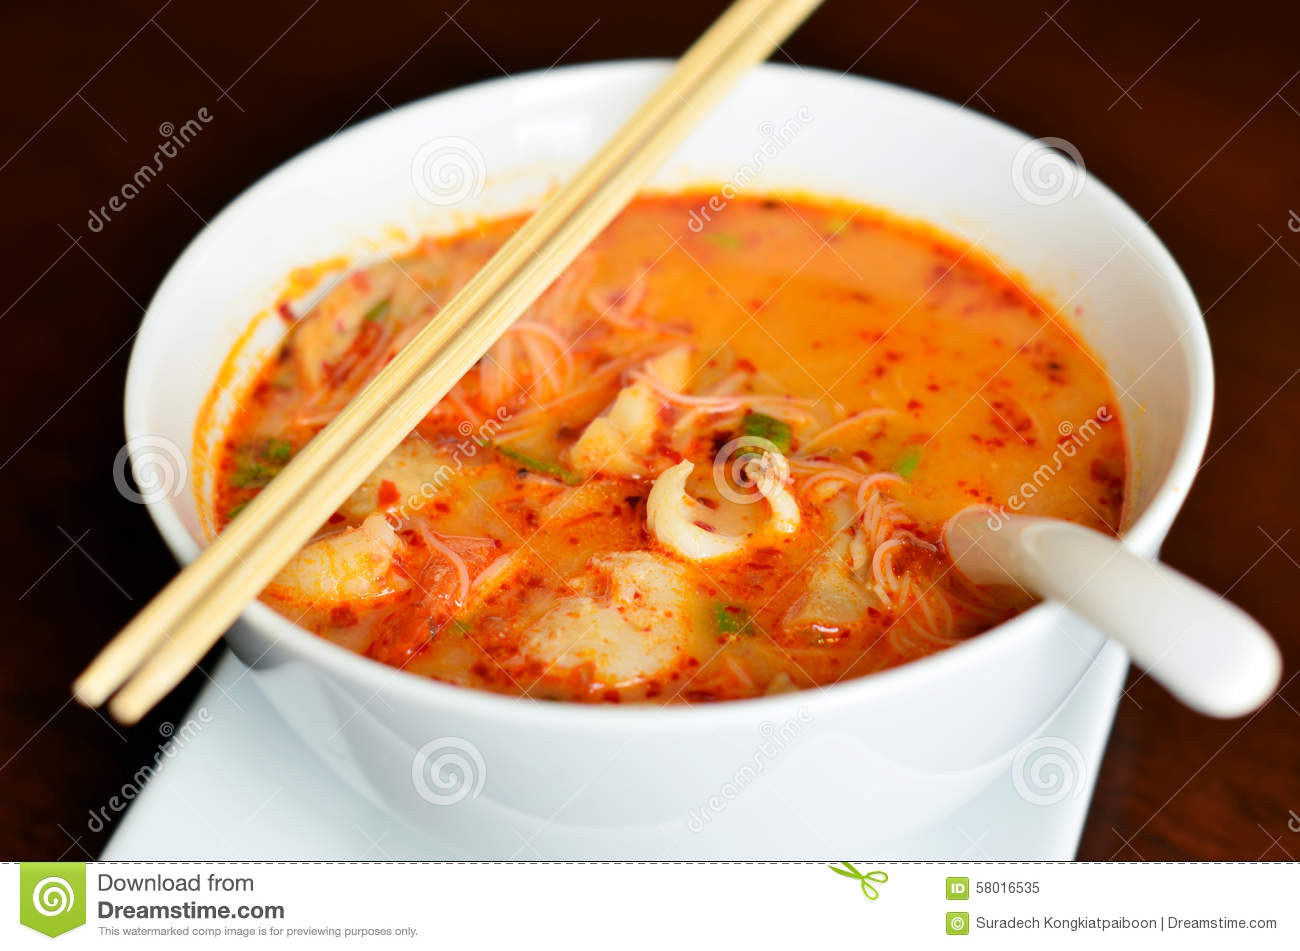 Hot And Sour Seafood Thai Noodle Soup Stock Photo Image: 58016535 ...